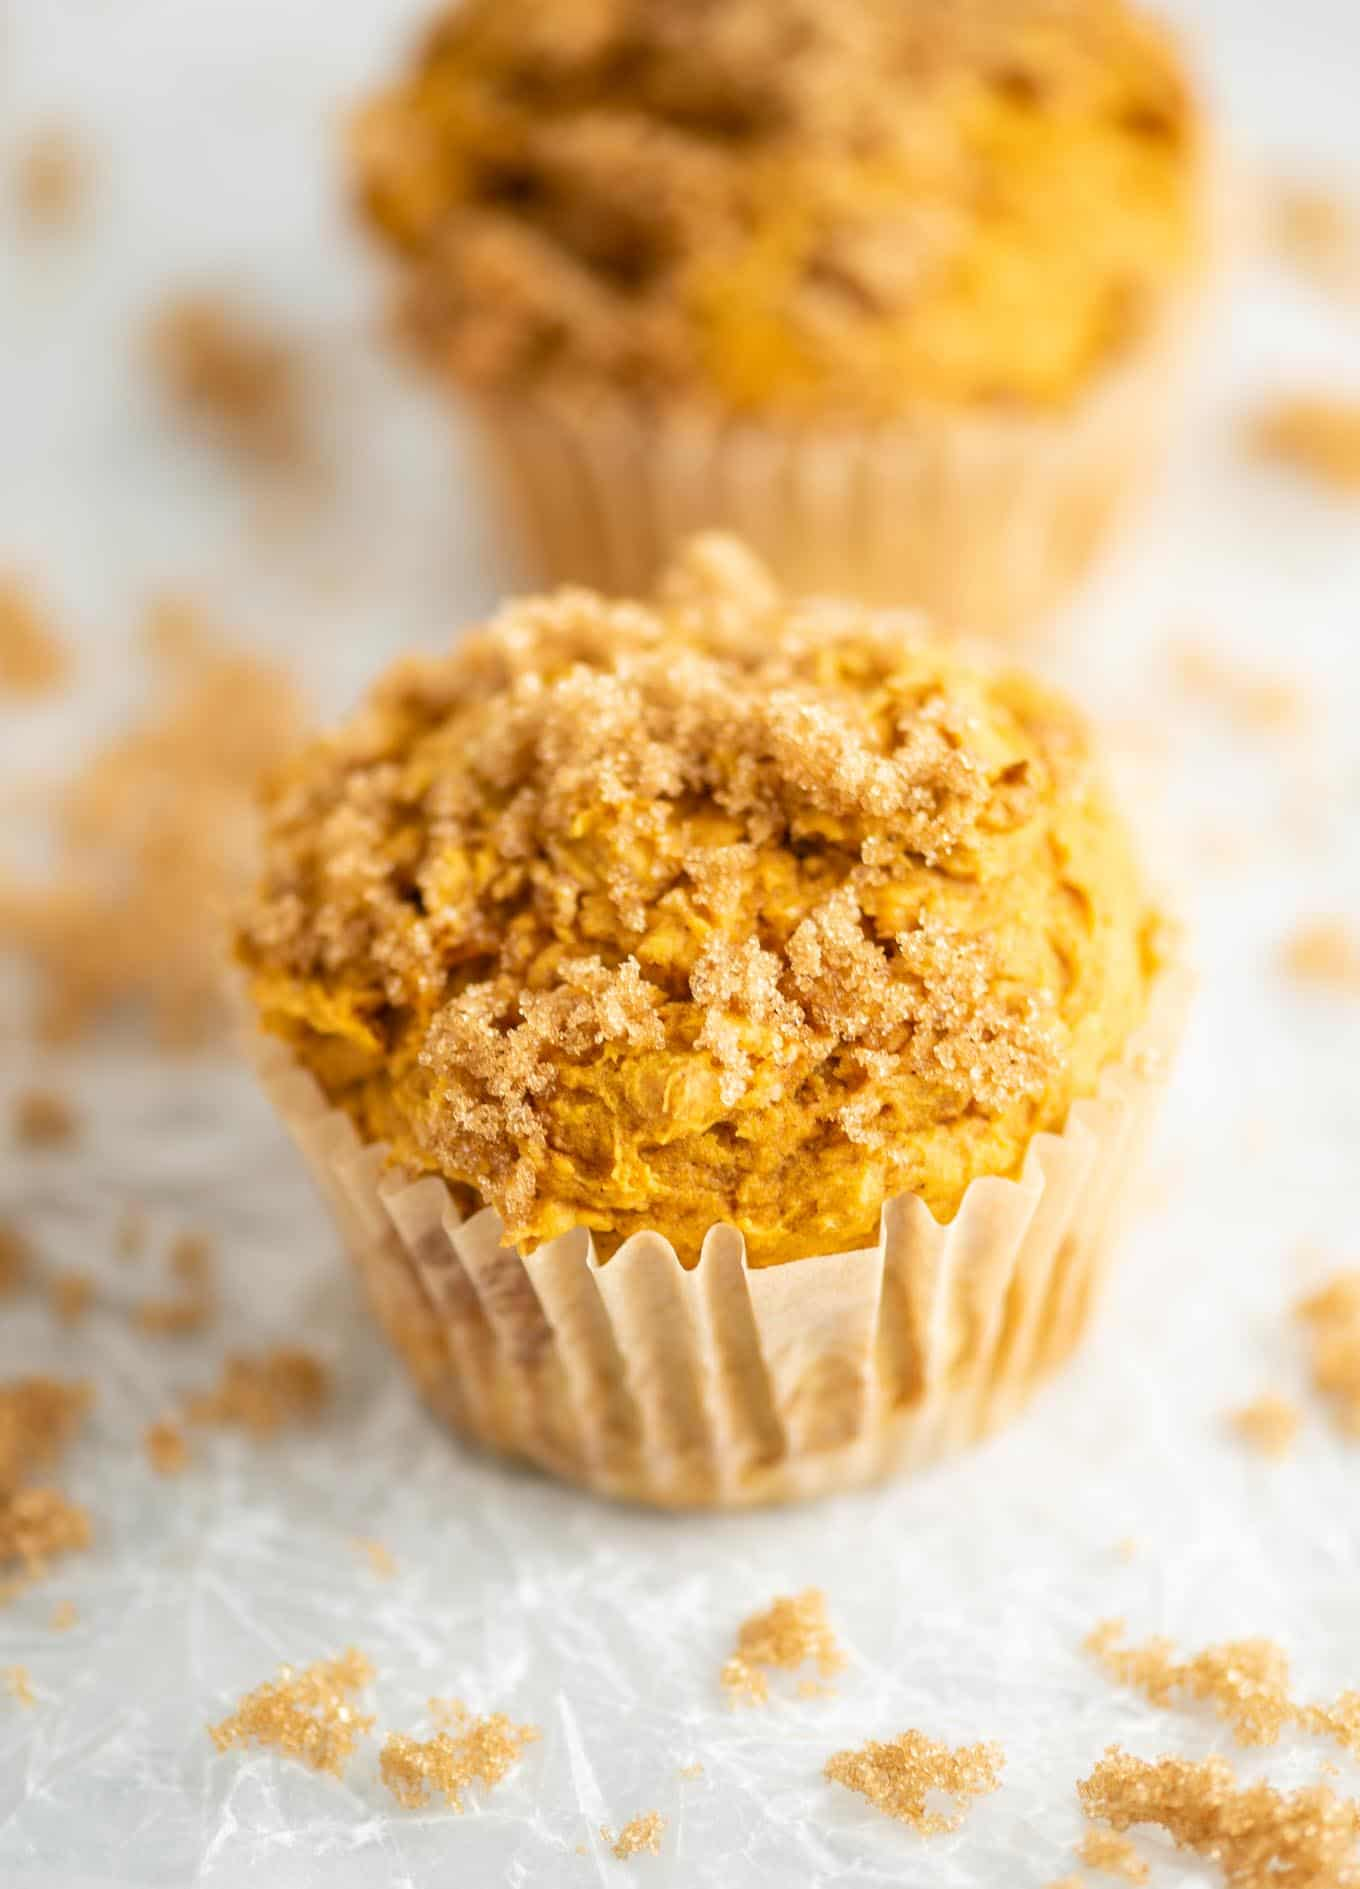 muffin with brown sugar on top